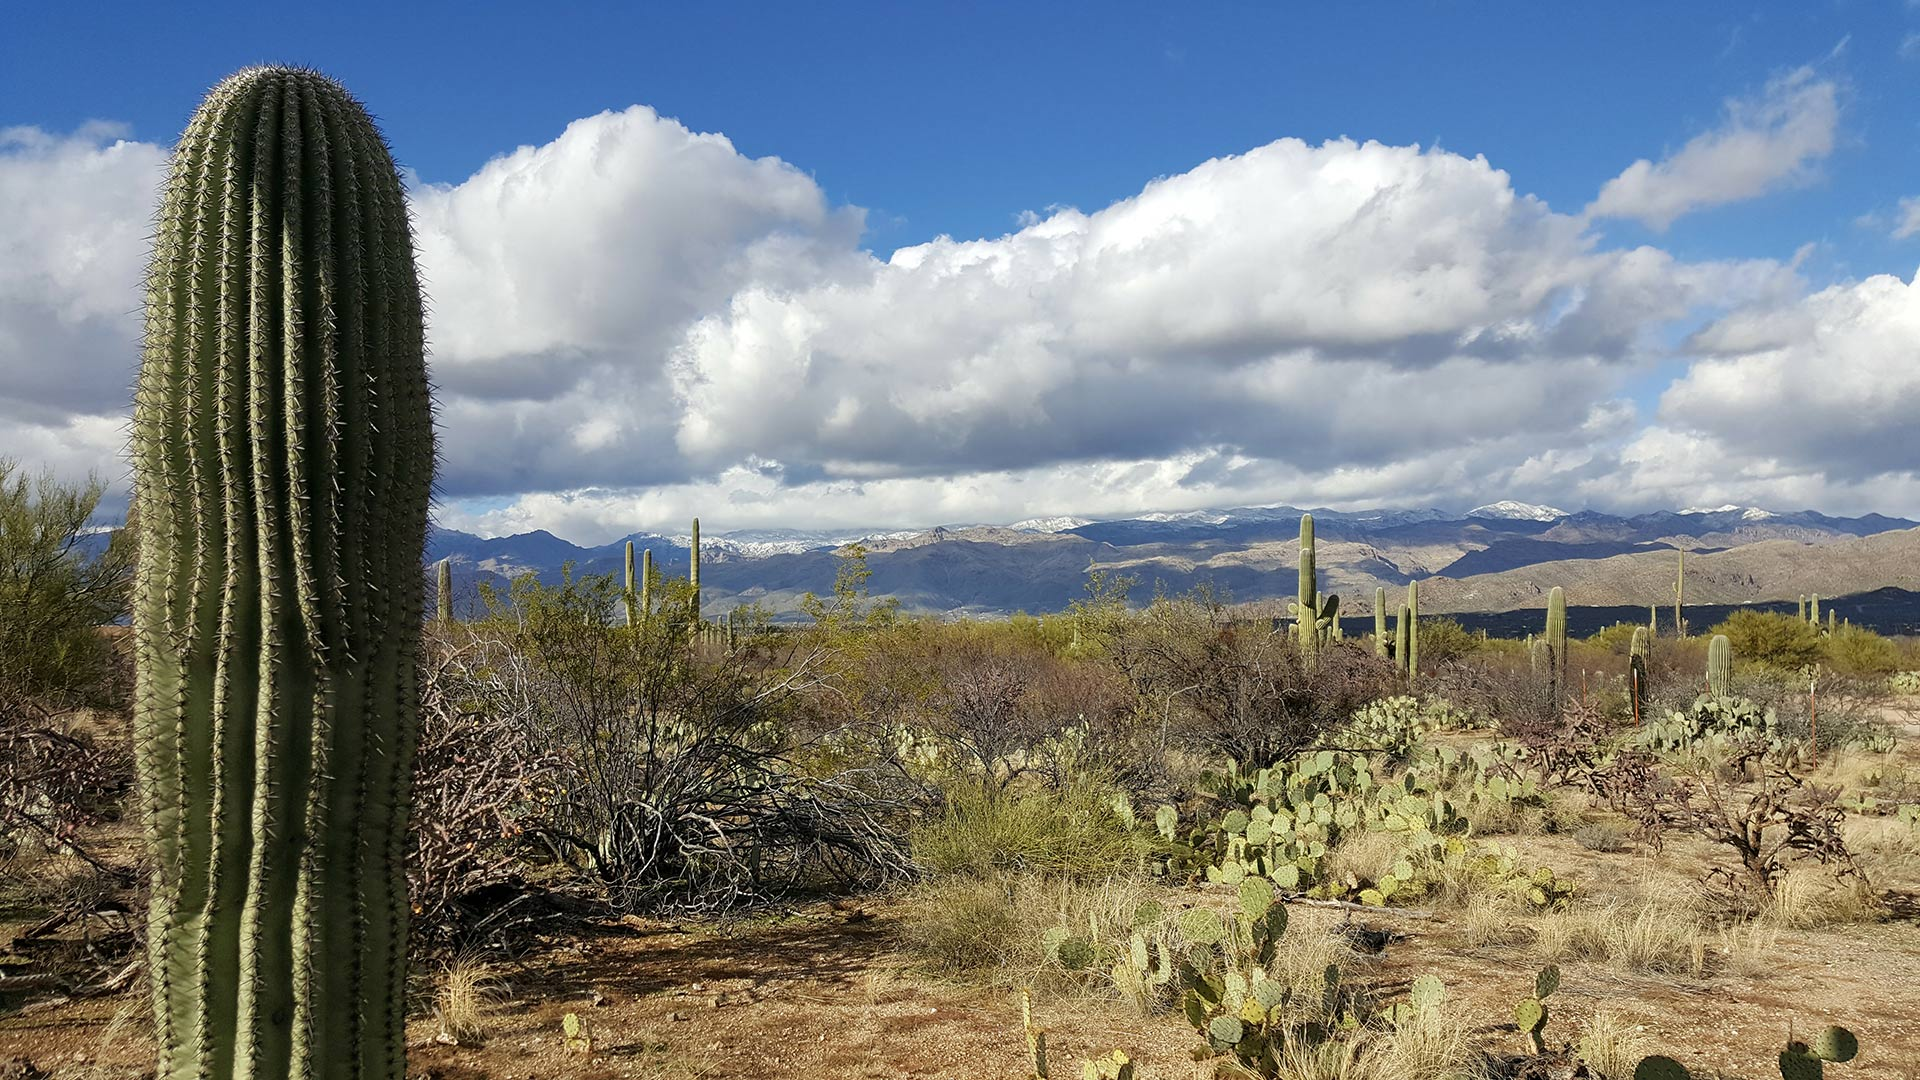 The Catalina Mountains are dusted with snow in the background of this desert photo.